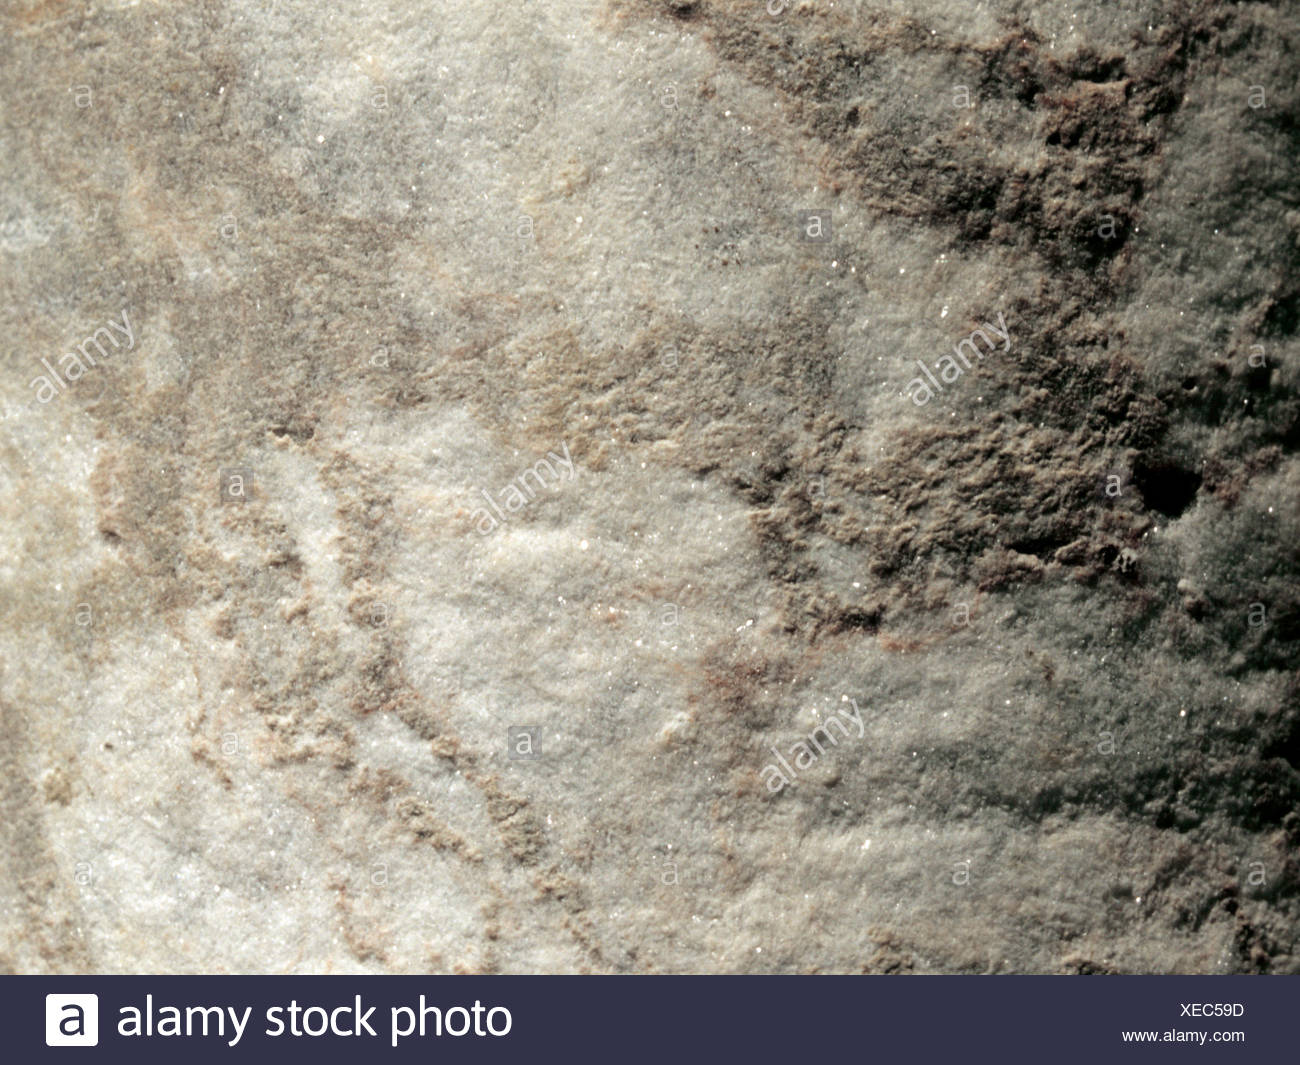 Anhydrite, Germany, Northern Germany - Stock Image